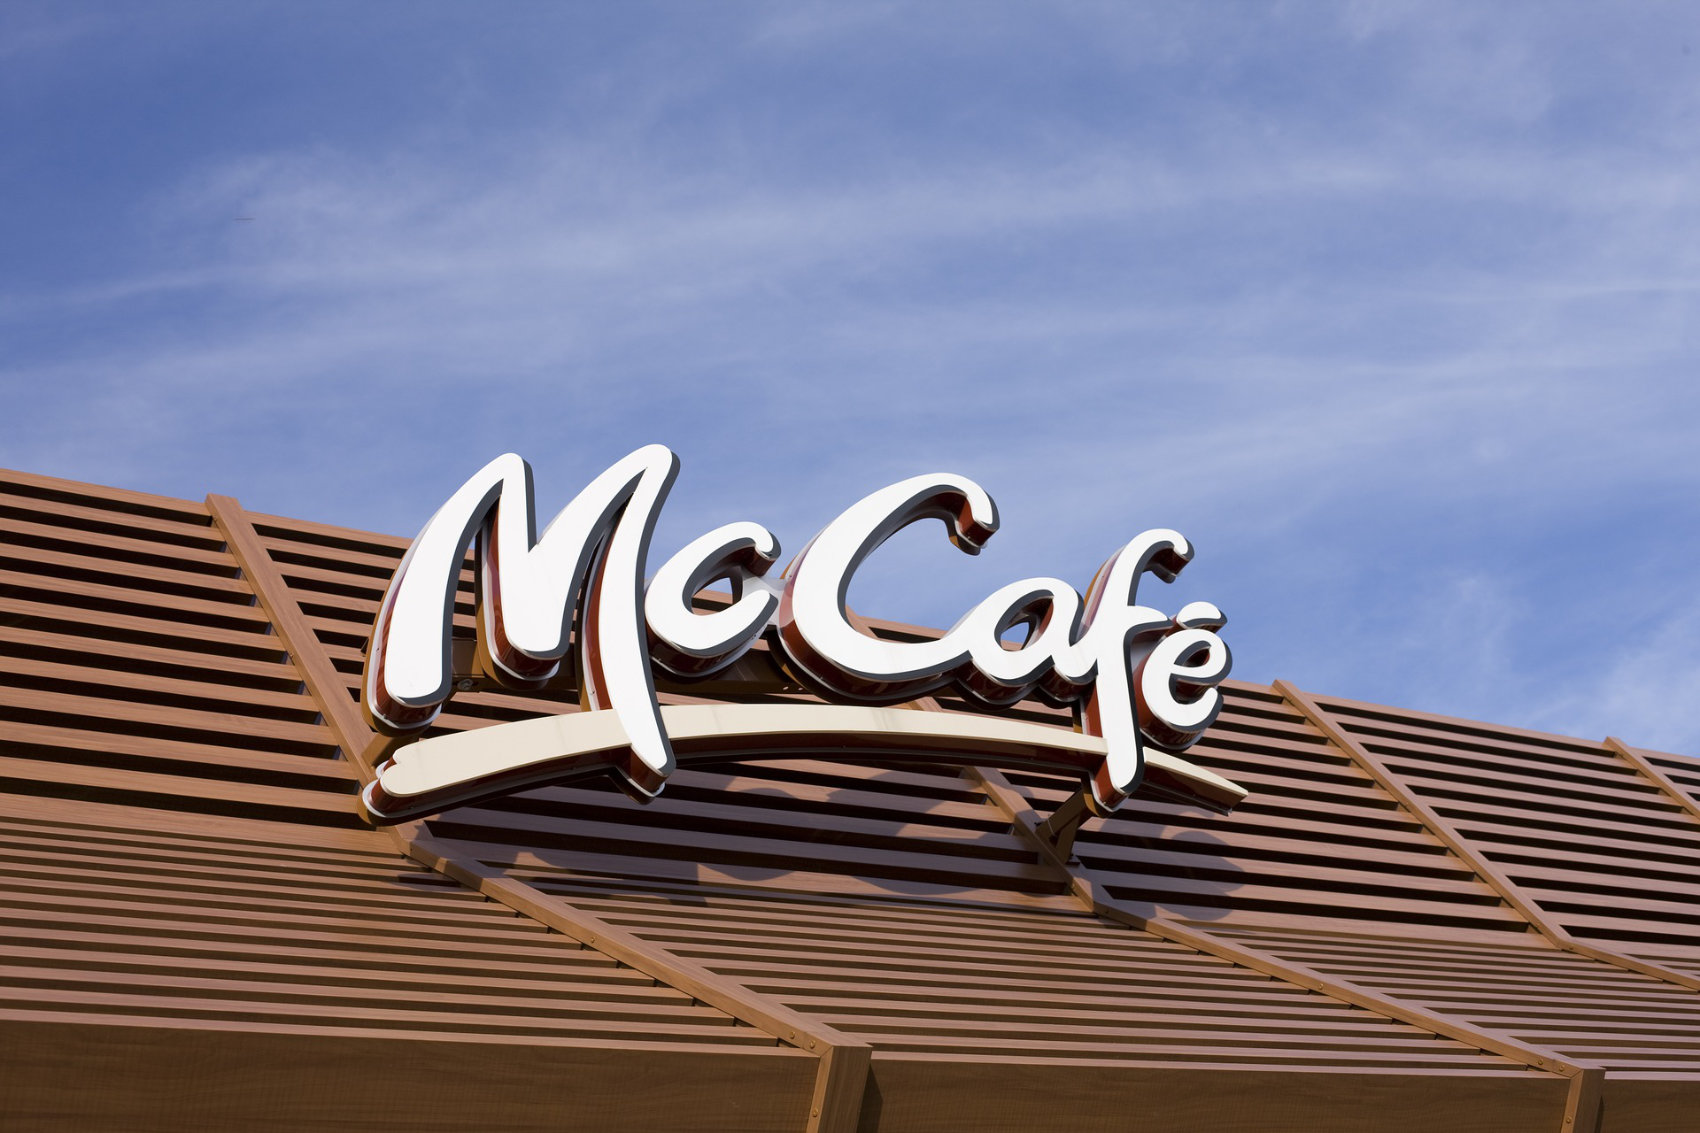 McCafe Sign - Image by andreas160578